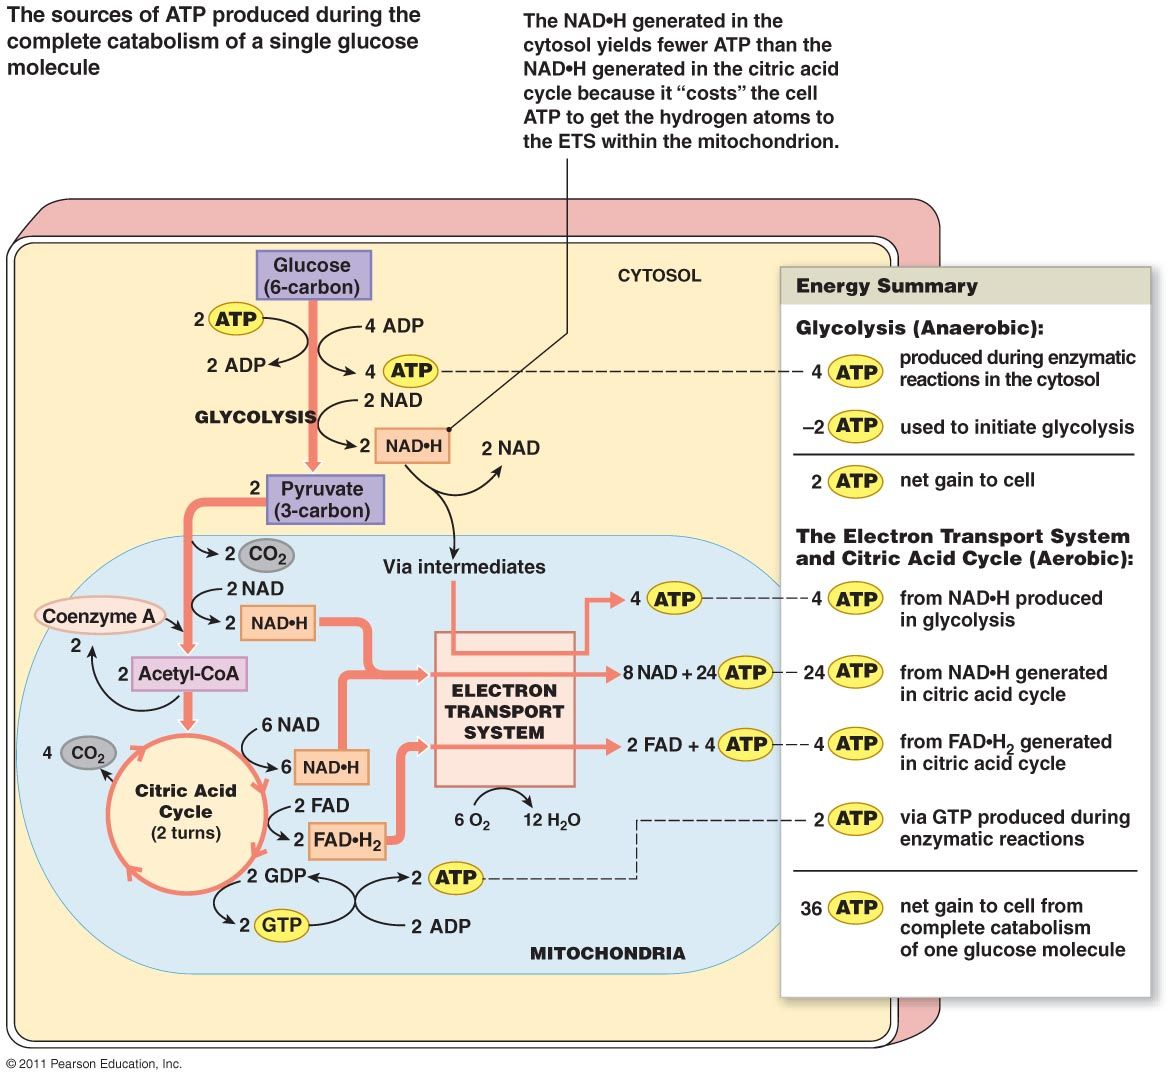 medium resolution of glucose metabolism diagram glucose metabolism diagram find this pin and more on metabolic pathways by paul tags electron transport chain